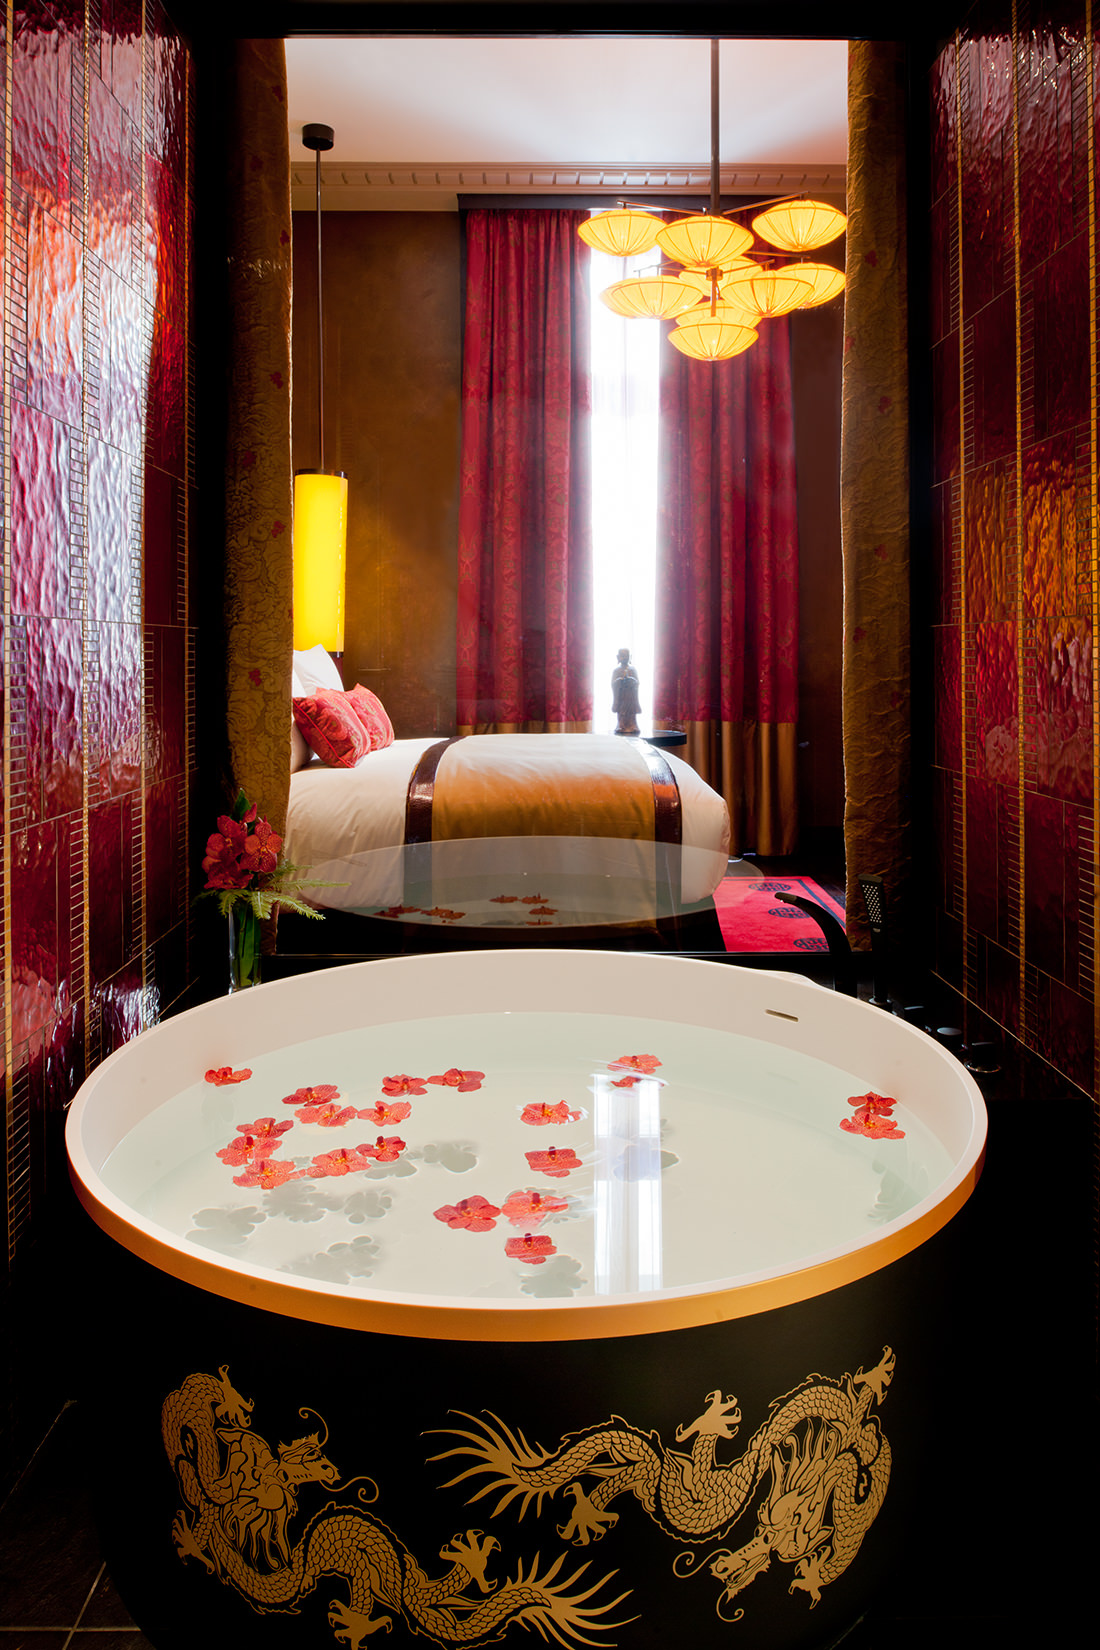 buddhabar hotel paris not just another hotel it�s a